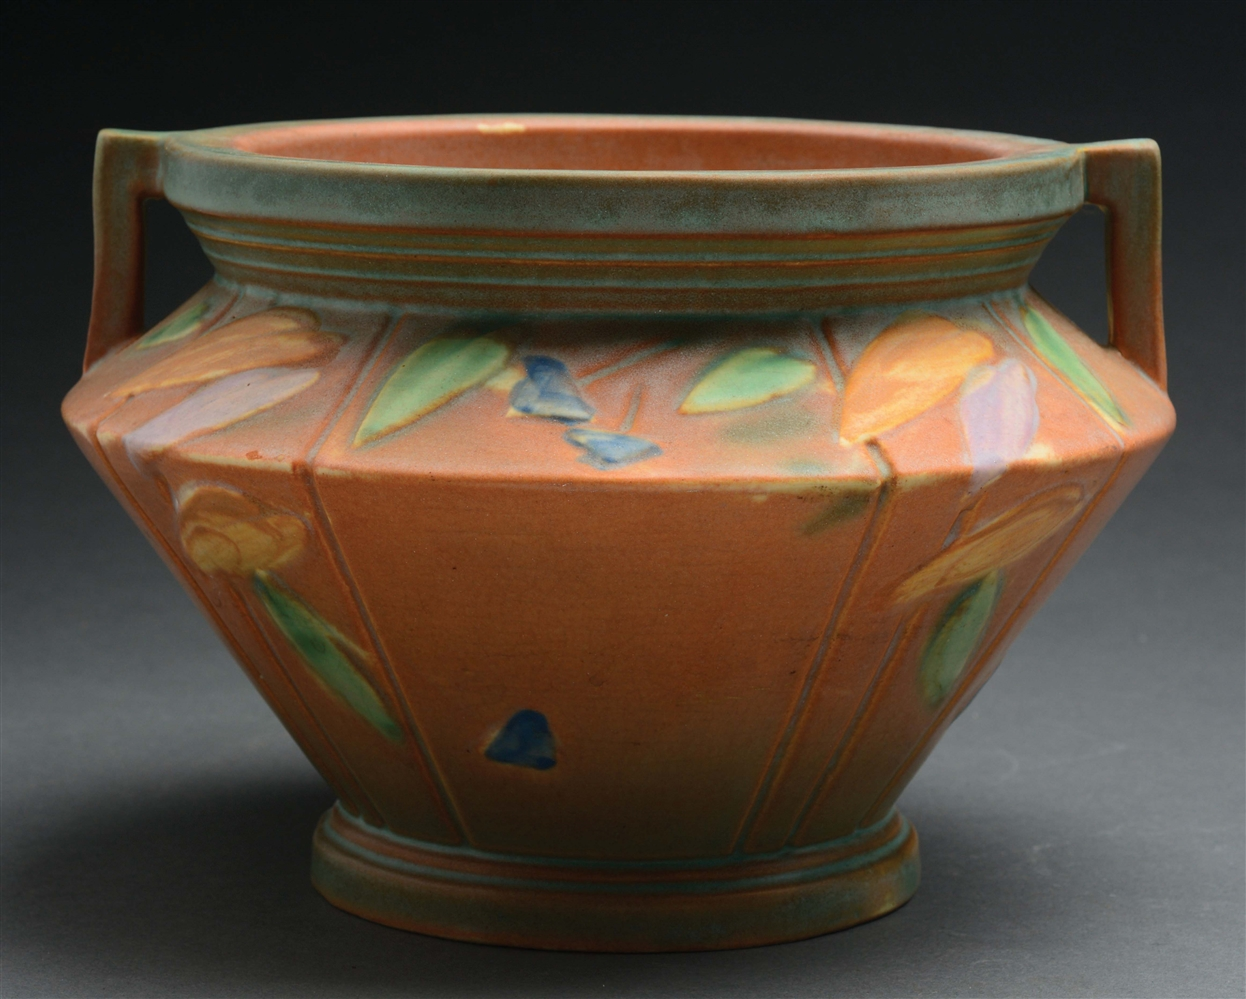 Roseville Pottery Futura Jardiniere With Handles & Leaves.